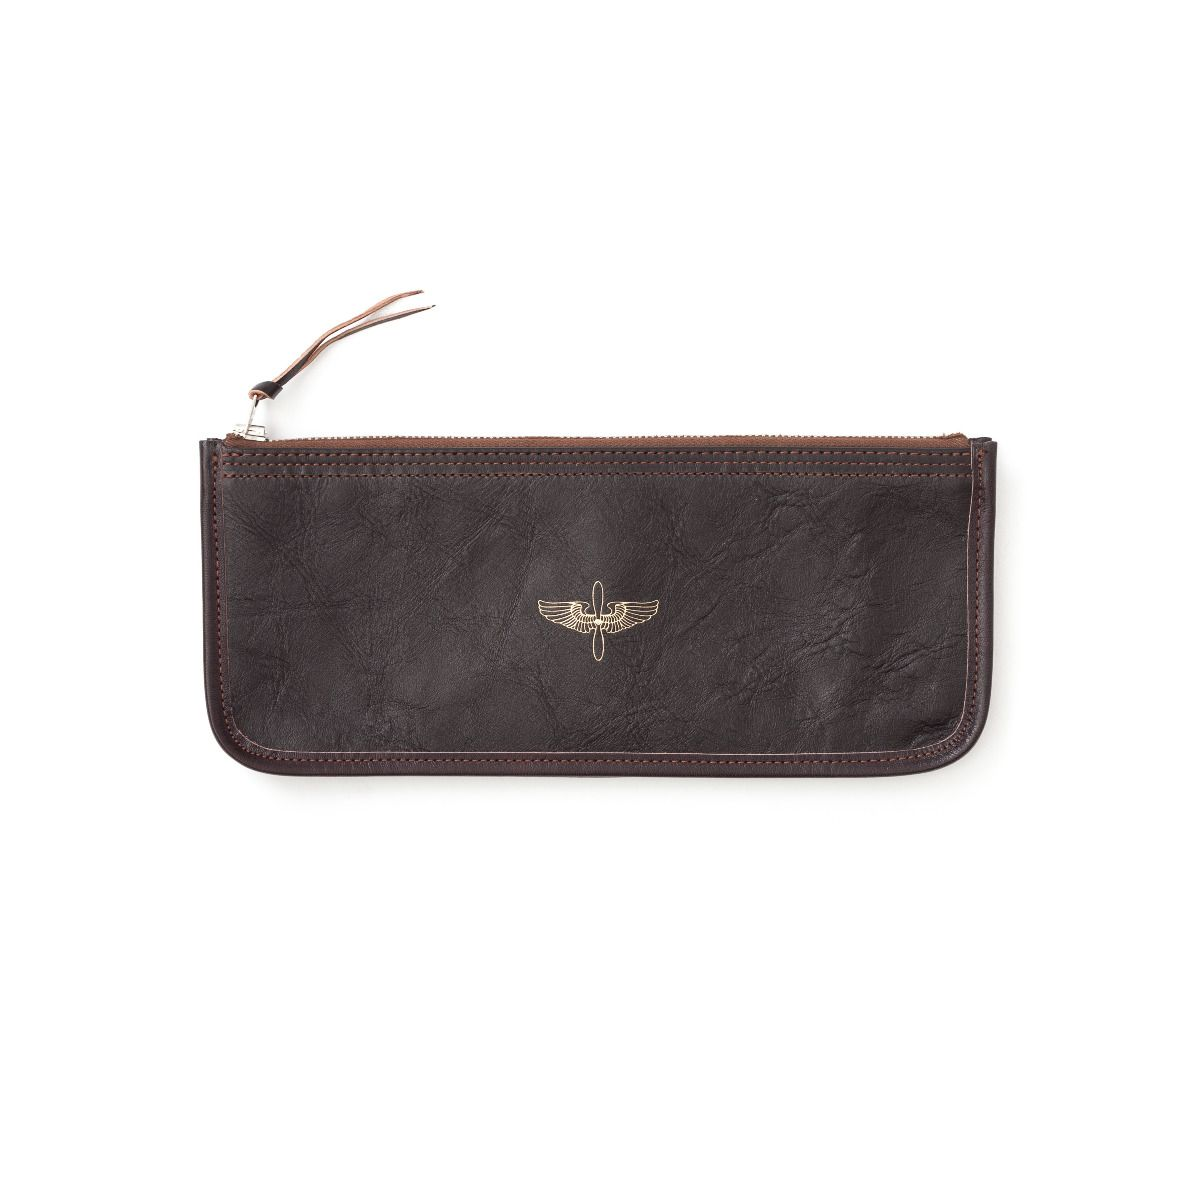 The Real McCoy's Horsehide Large Zipper Wallet